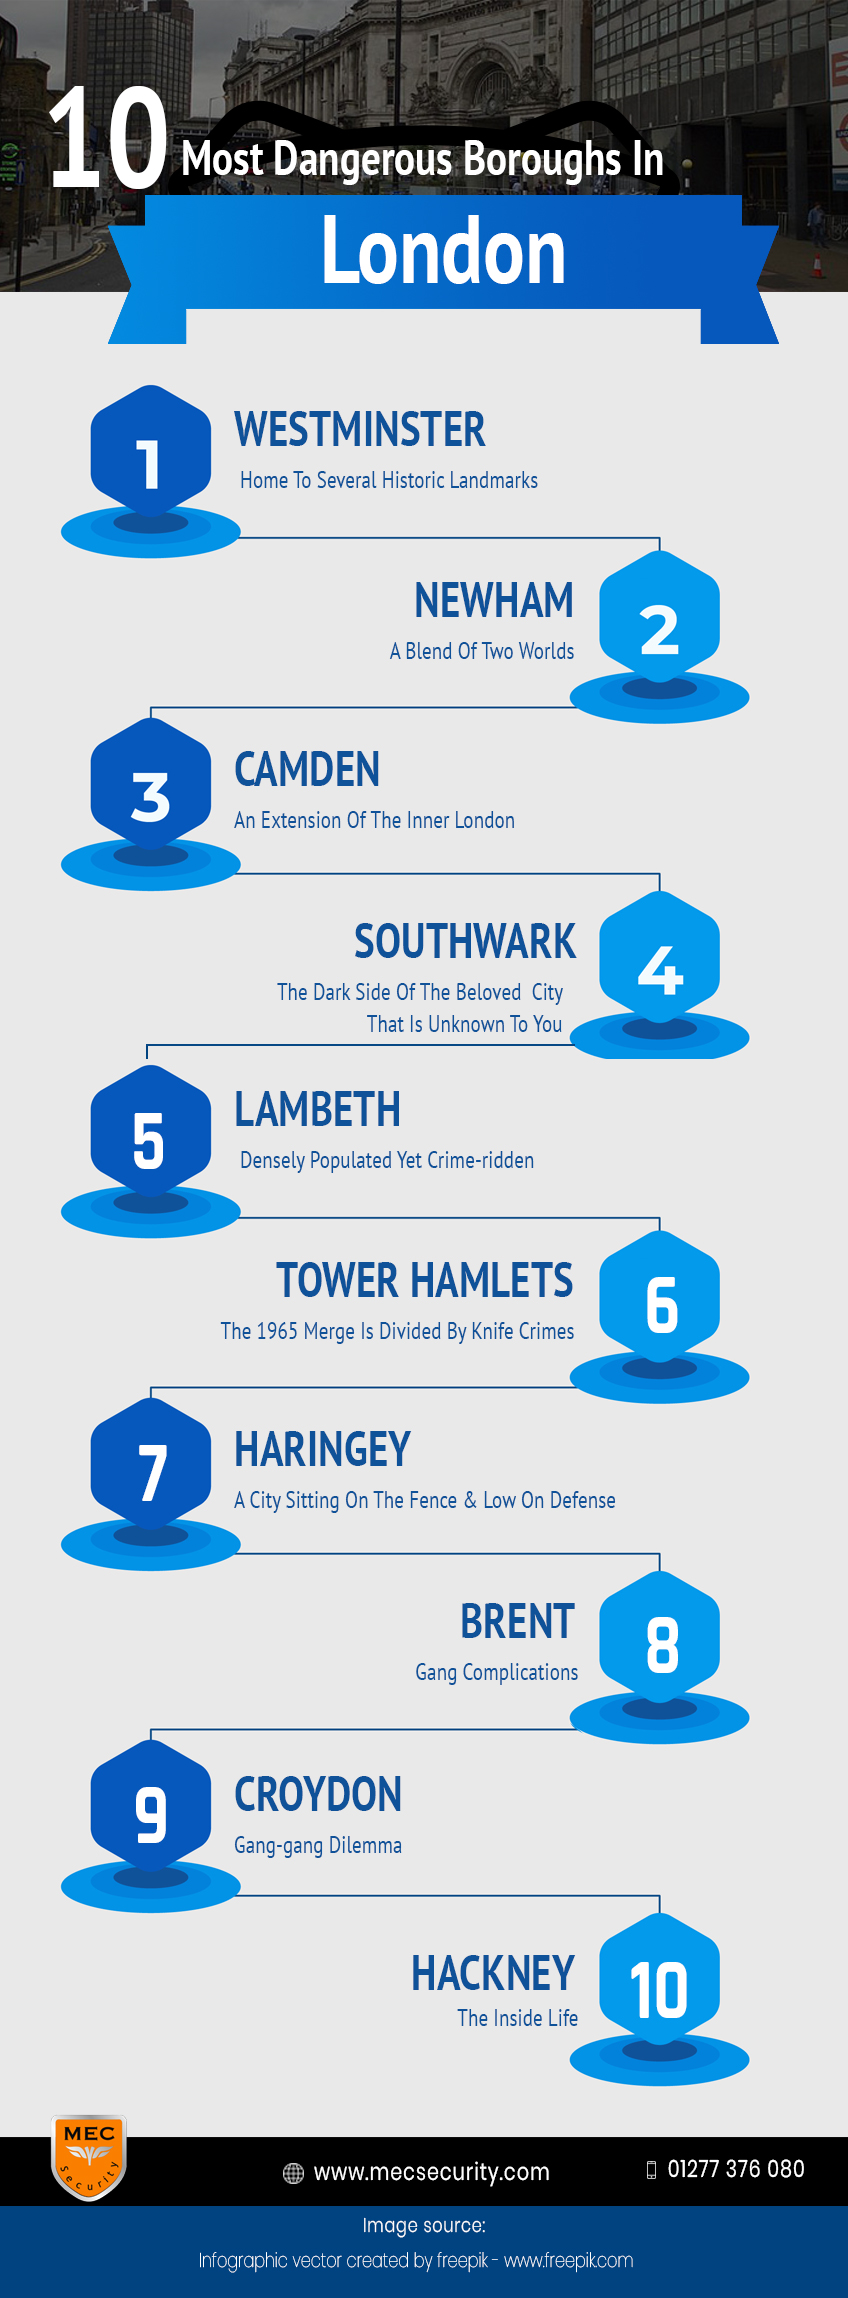 10-Most-Dangerous-Boroughs-In-London INFOGRAPHIC